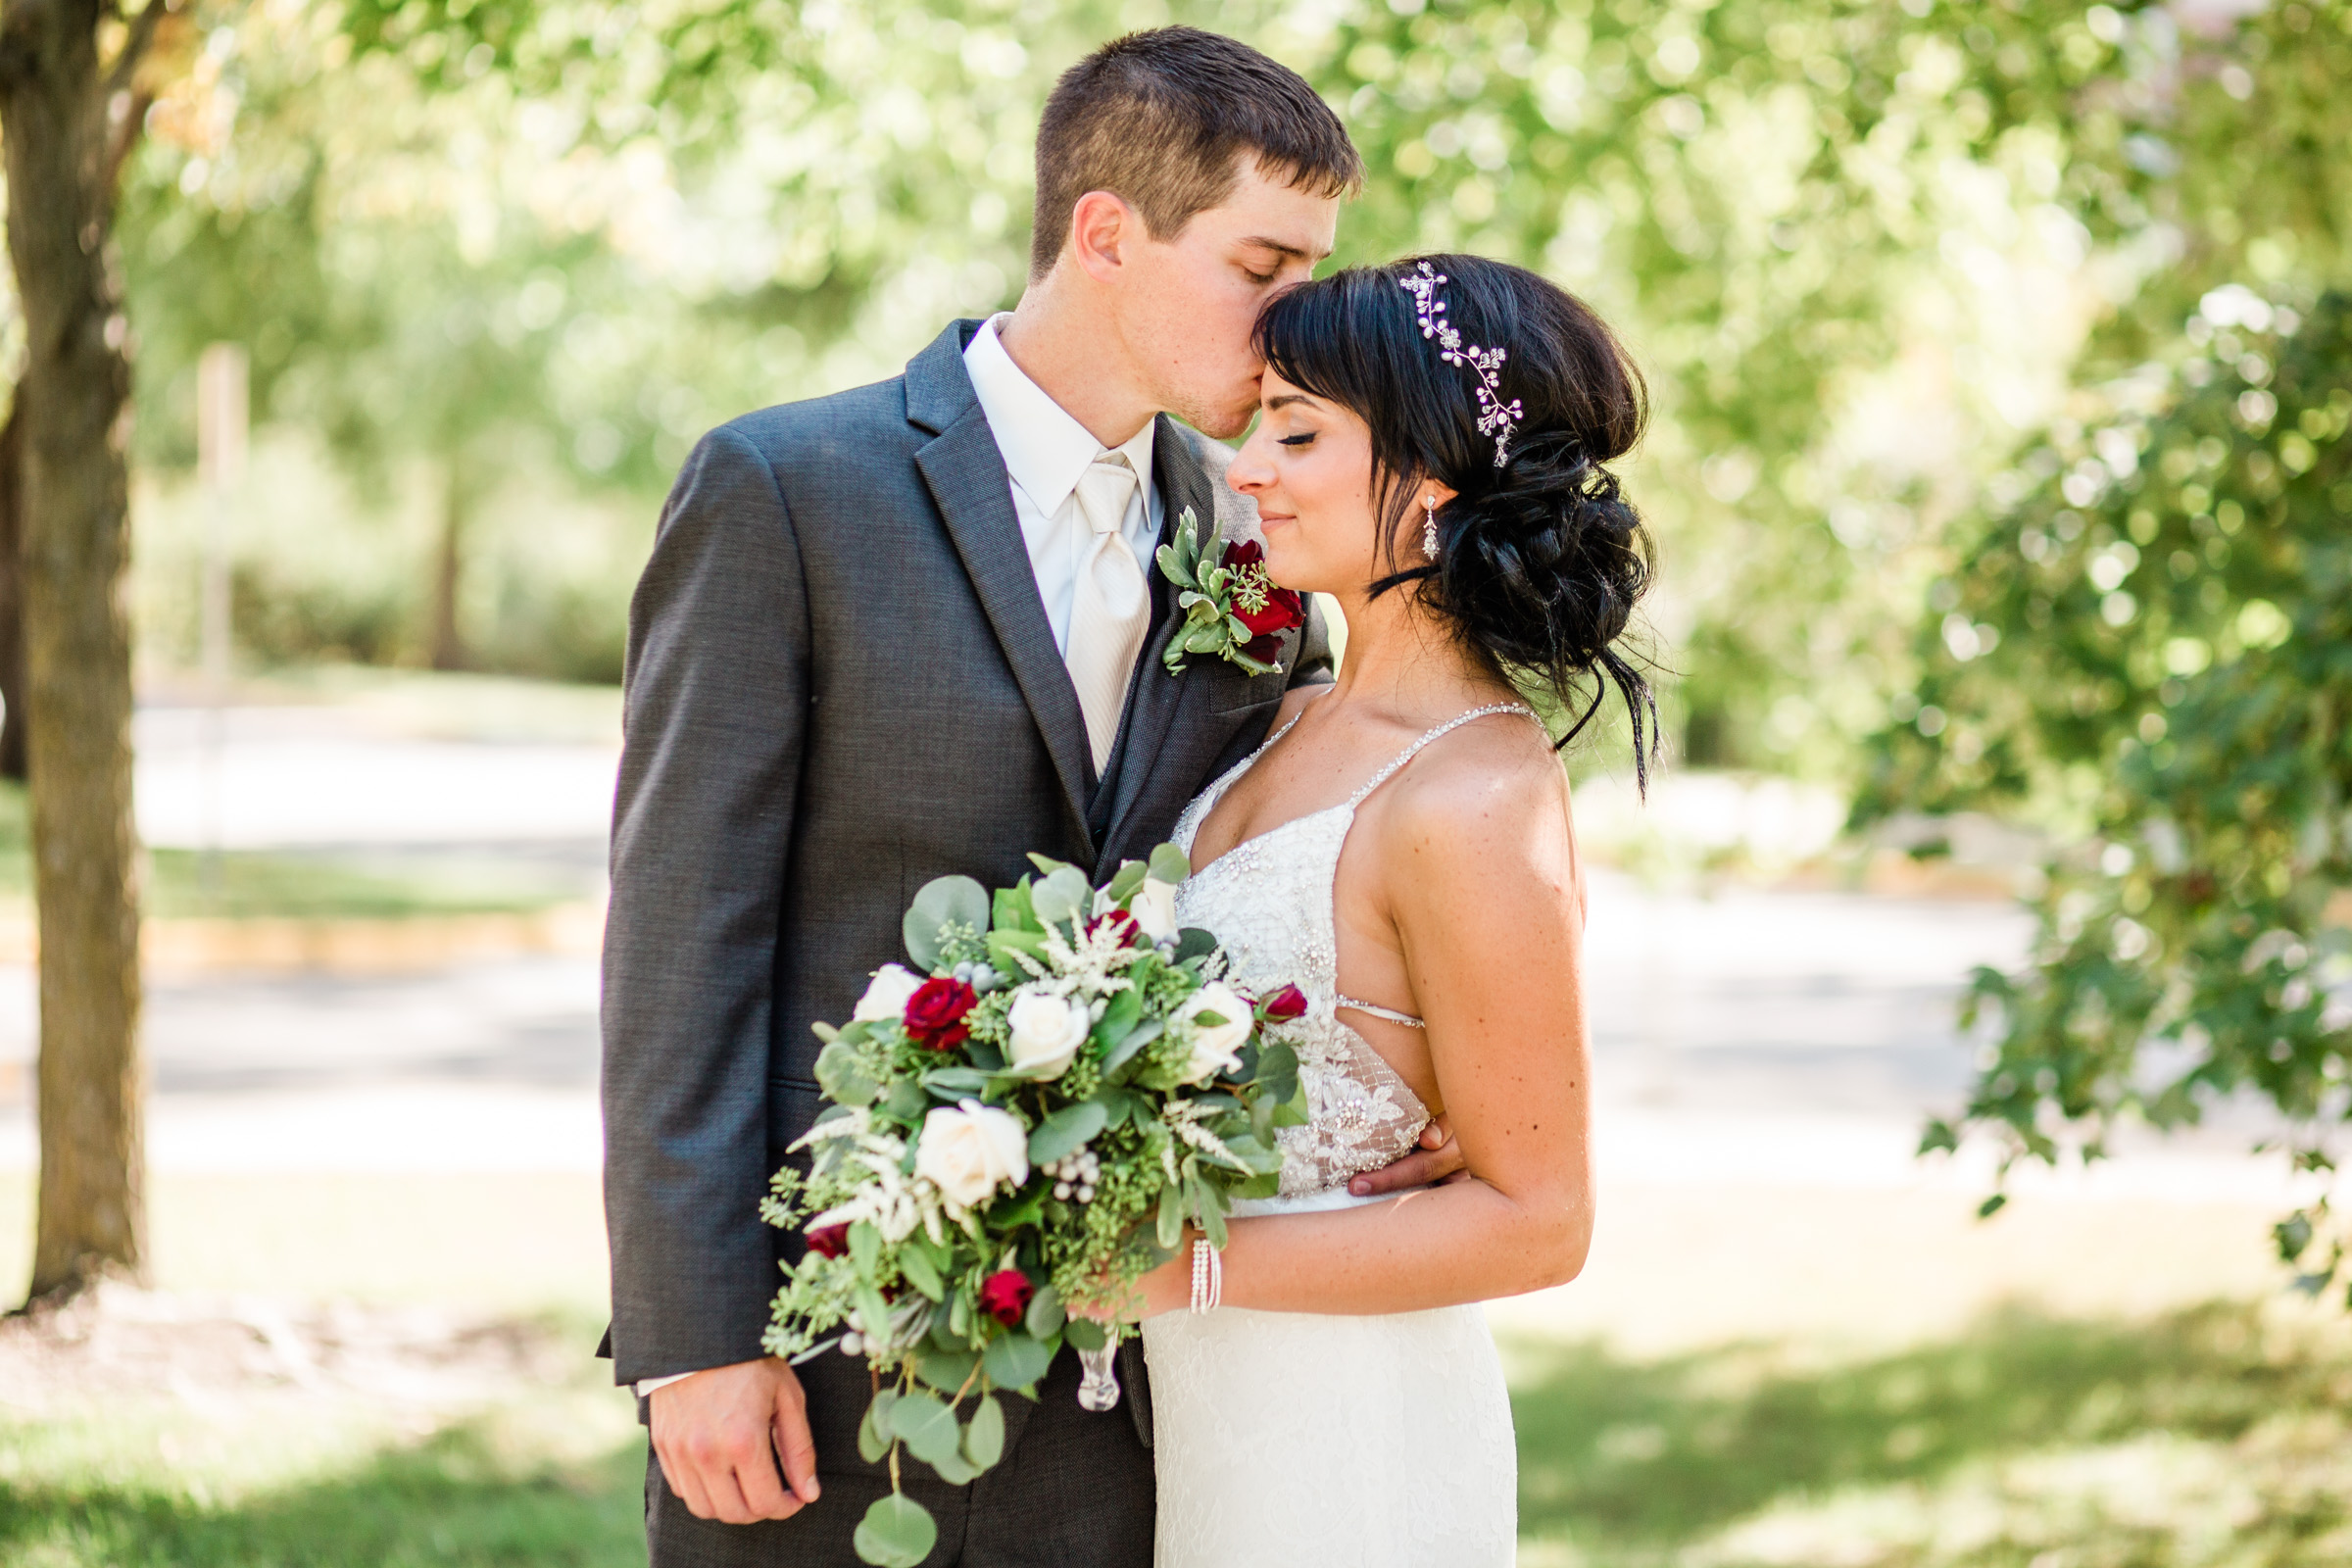 outdoor wedding photos Iowa Des Moines Dubuque Iowa City Marshalltown Cedar Falls amelia renee